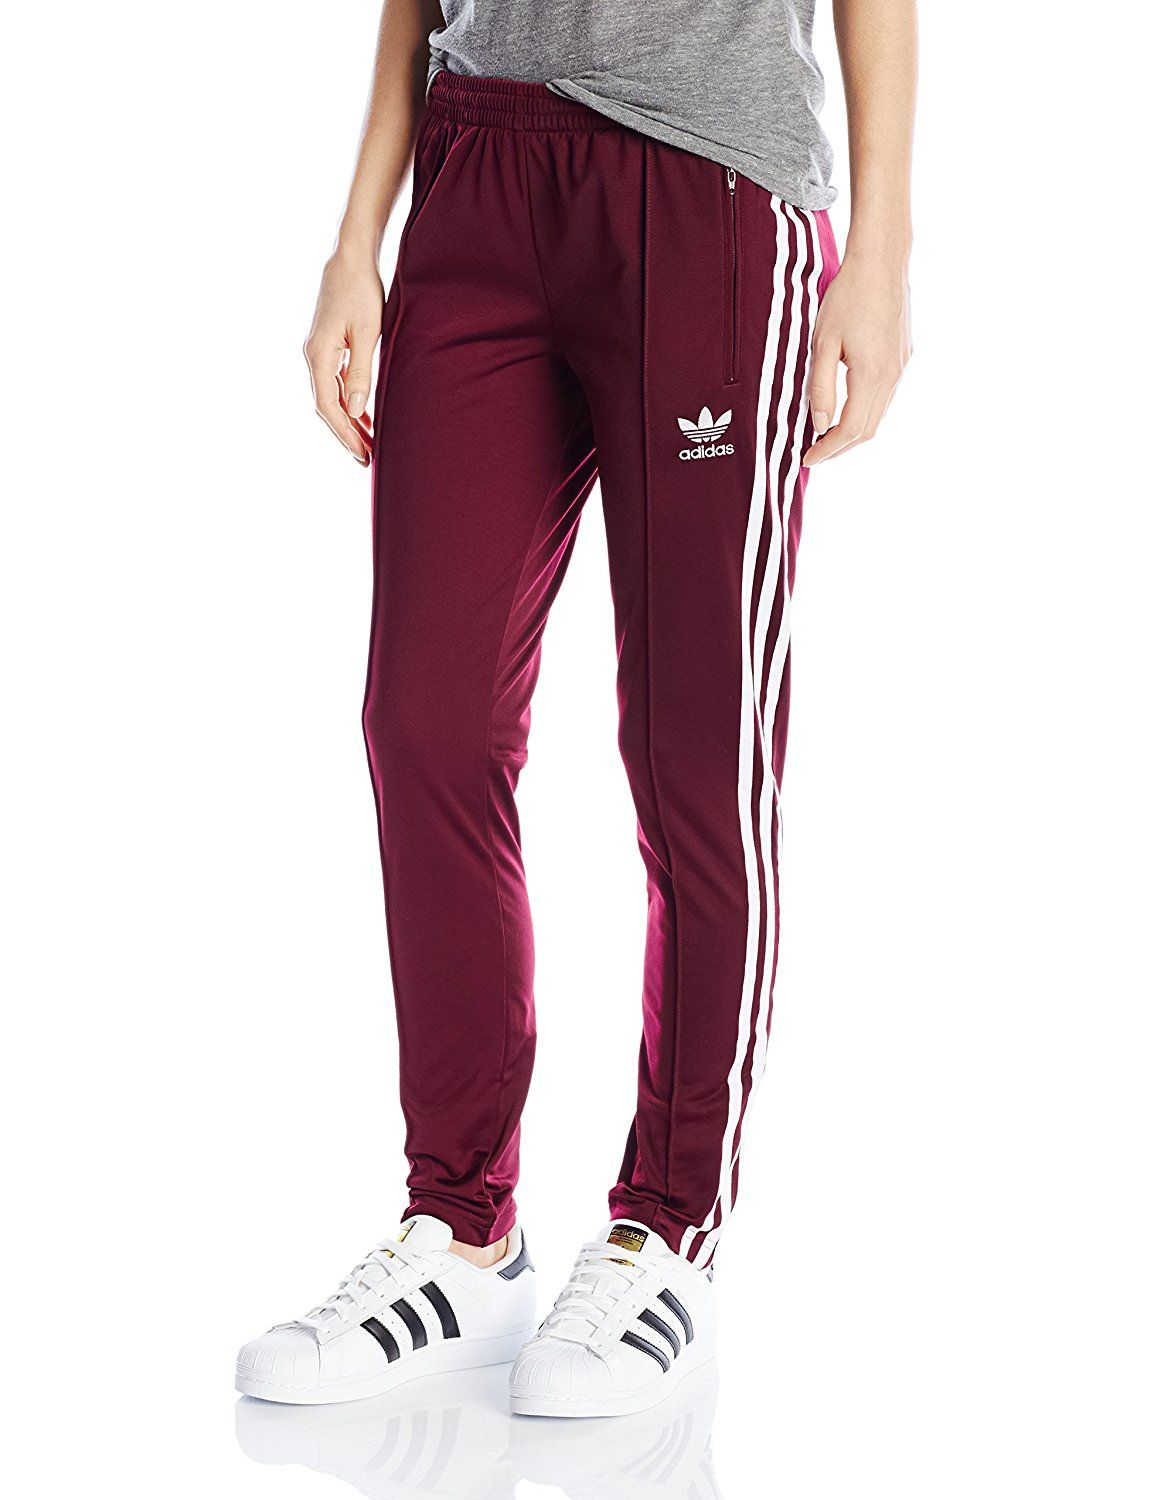 31e2389f27e2c Amazon.com  adidas Originals Women s Superstar Track Pant  Clothing ...